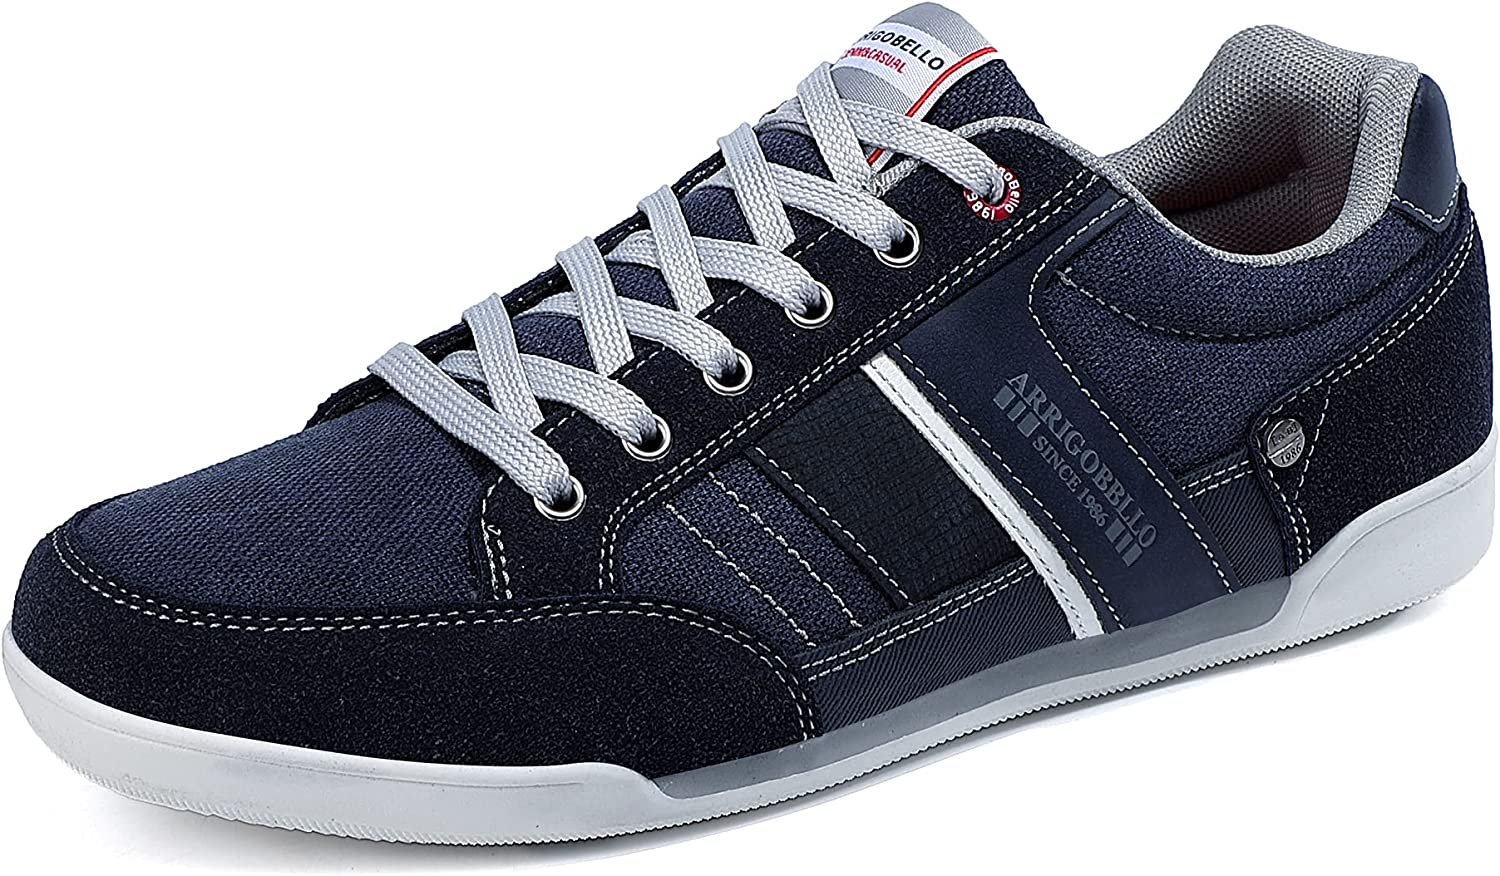 ARRIGO BELLO Mens Fashion Sneakers Casual Lightweight Lace Inventory cleanup selling sale Shoes Special price